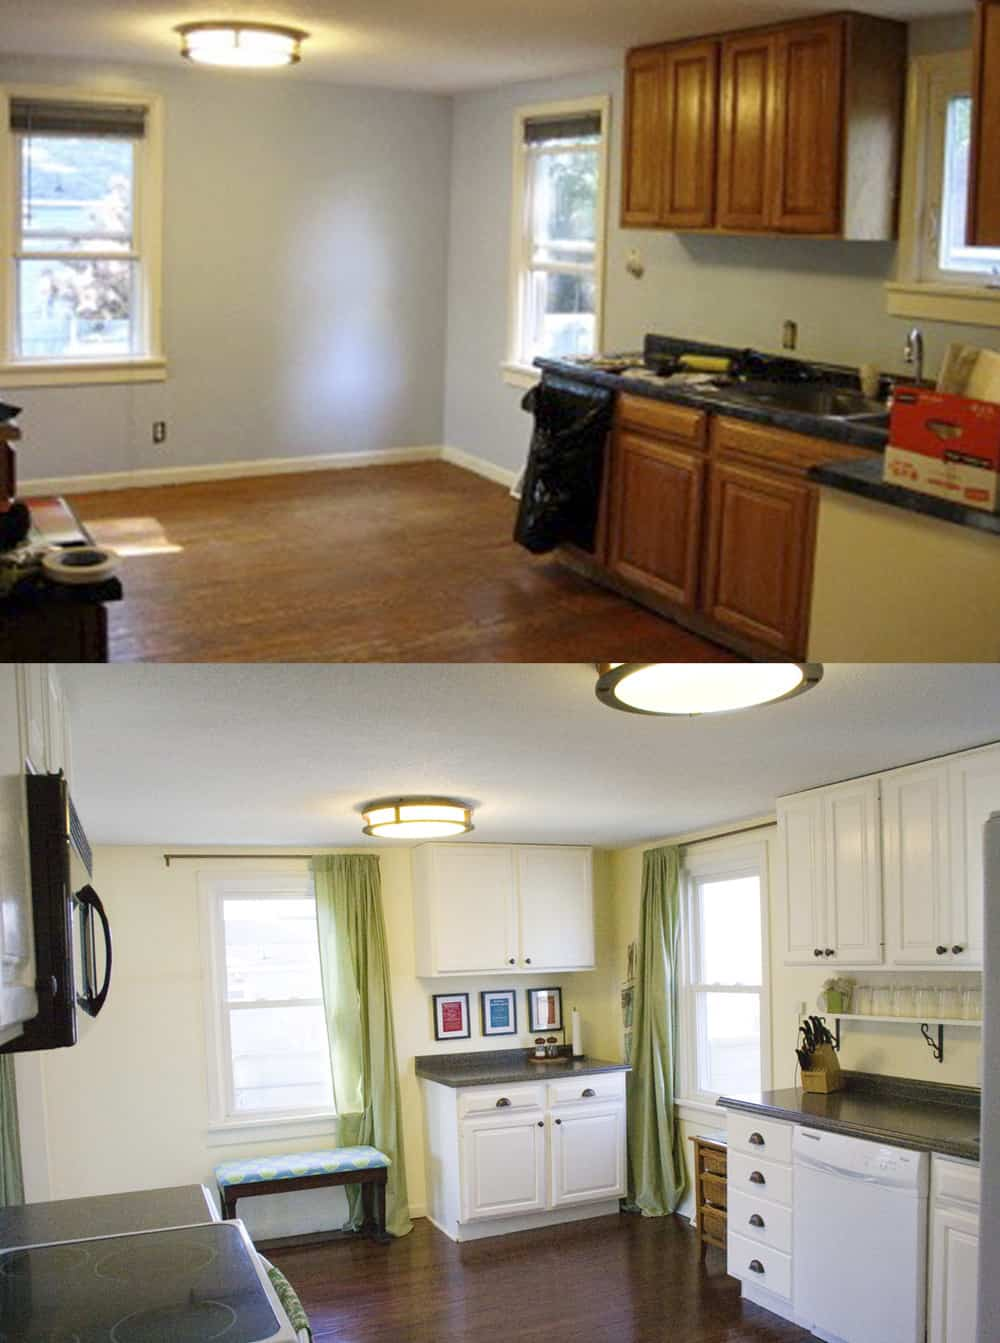 Fix Up Your House When You're Broke   DIY   Kitchen Redo